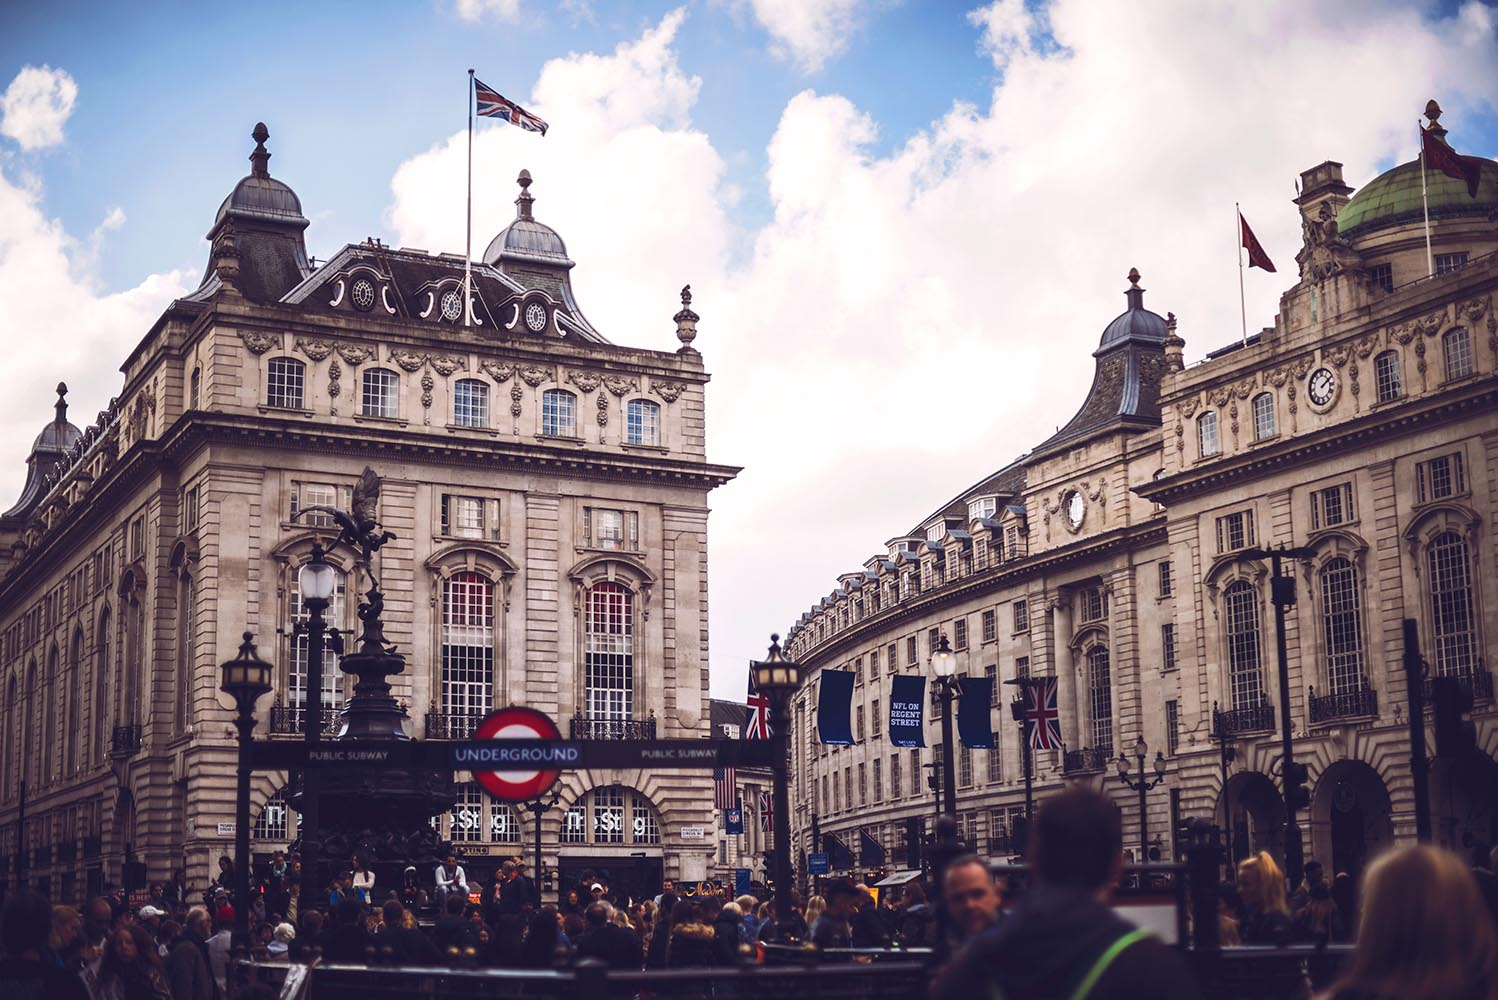 Piccadilly Circus of London